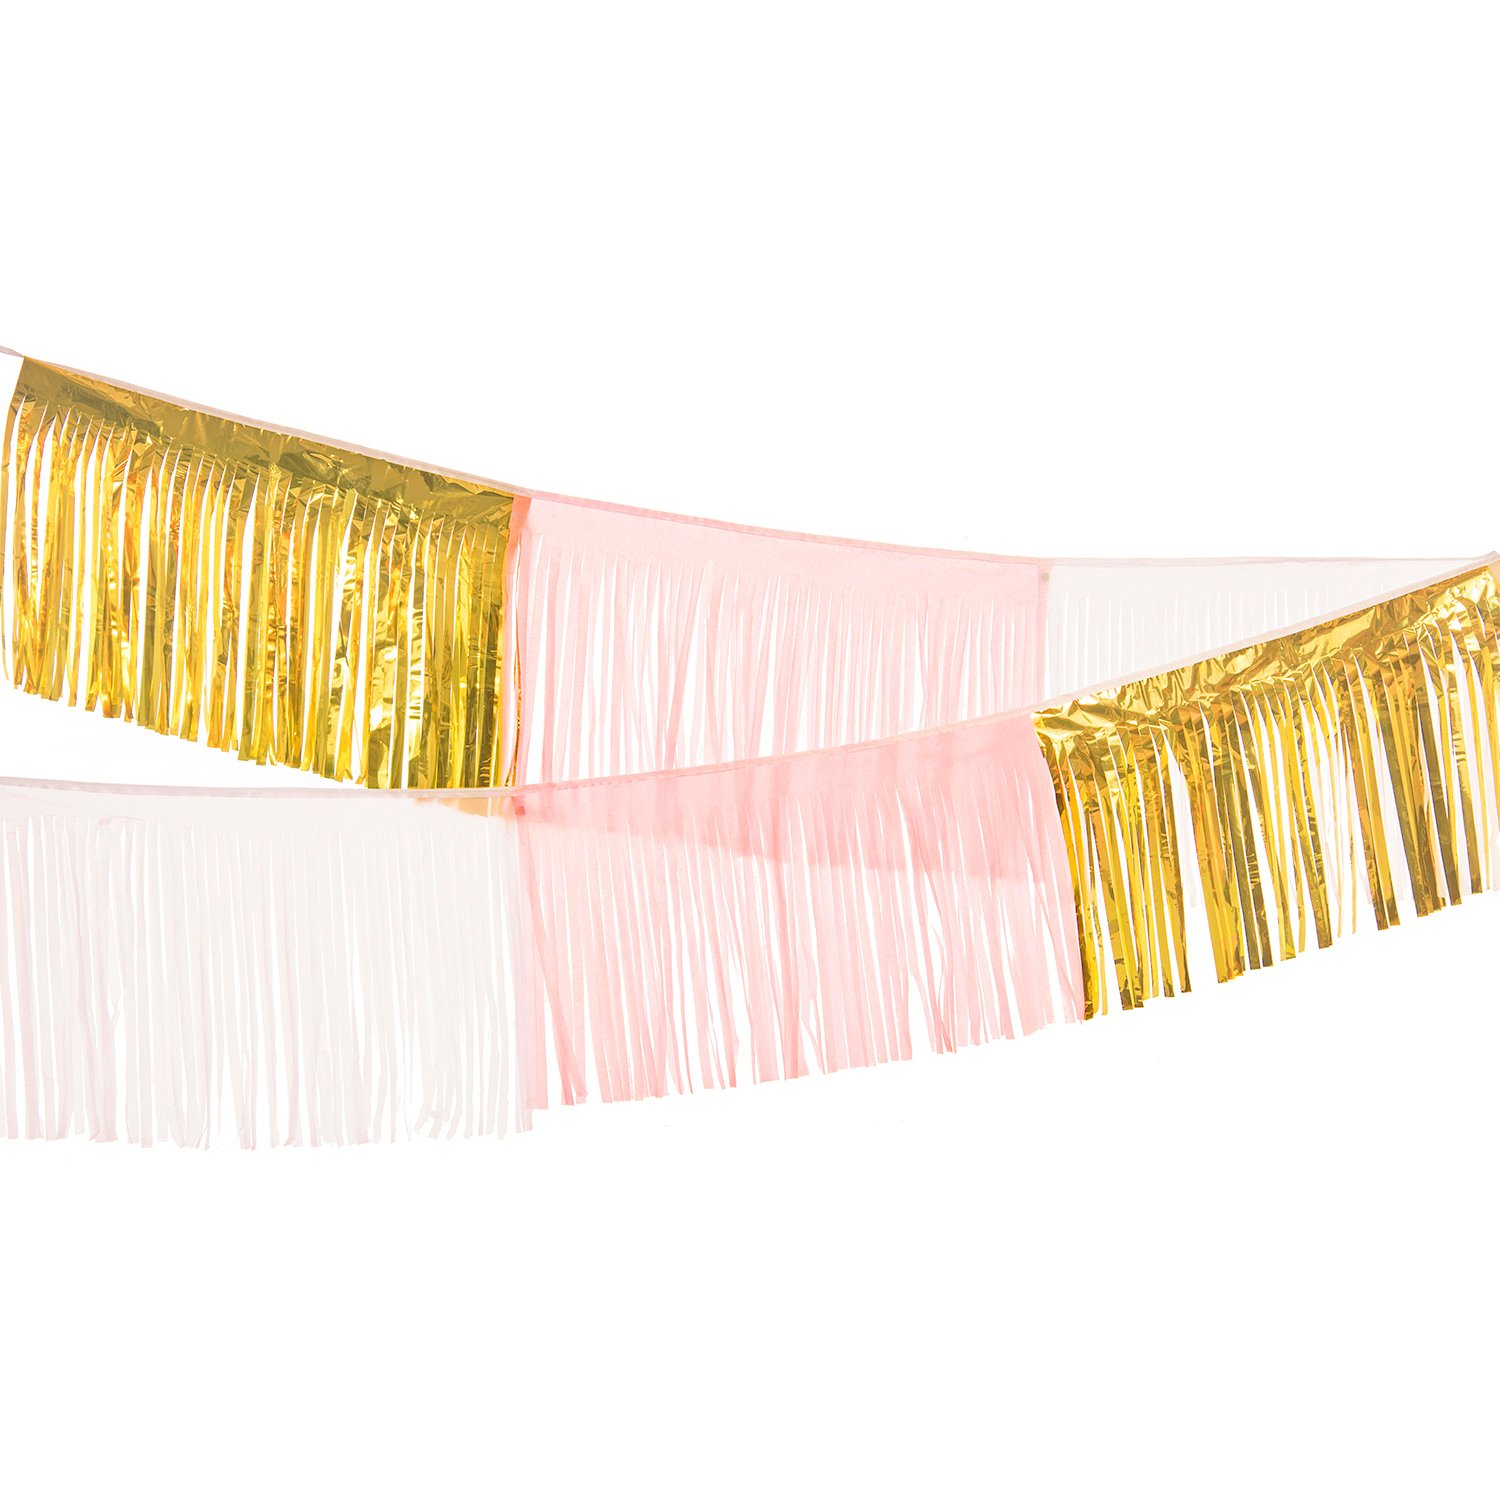 Ling's moment 9FT Tassel Banner Garland, Handmade Fiesta Fringe Garland, Tissue Tassel Garland, Fiesta Backdrop Banner for Wedding Cinco de Mayo Fiesta Engagement Birthday Cactus Bridal Shower Ling's moment